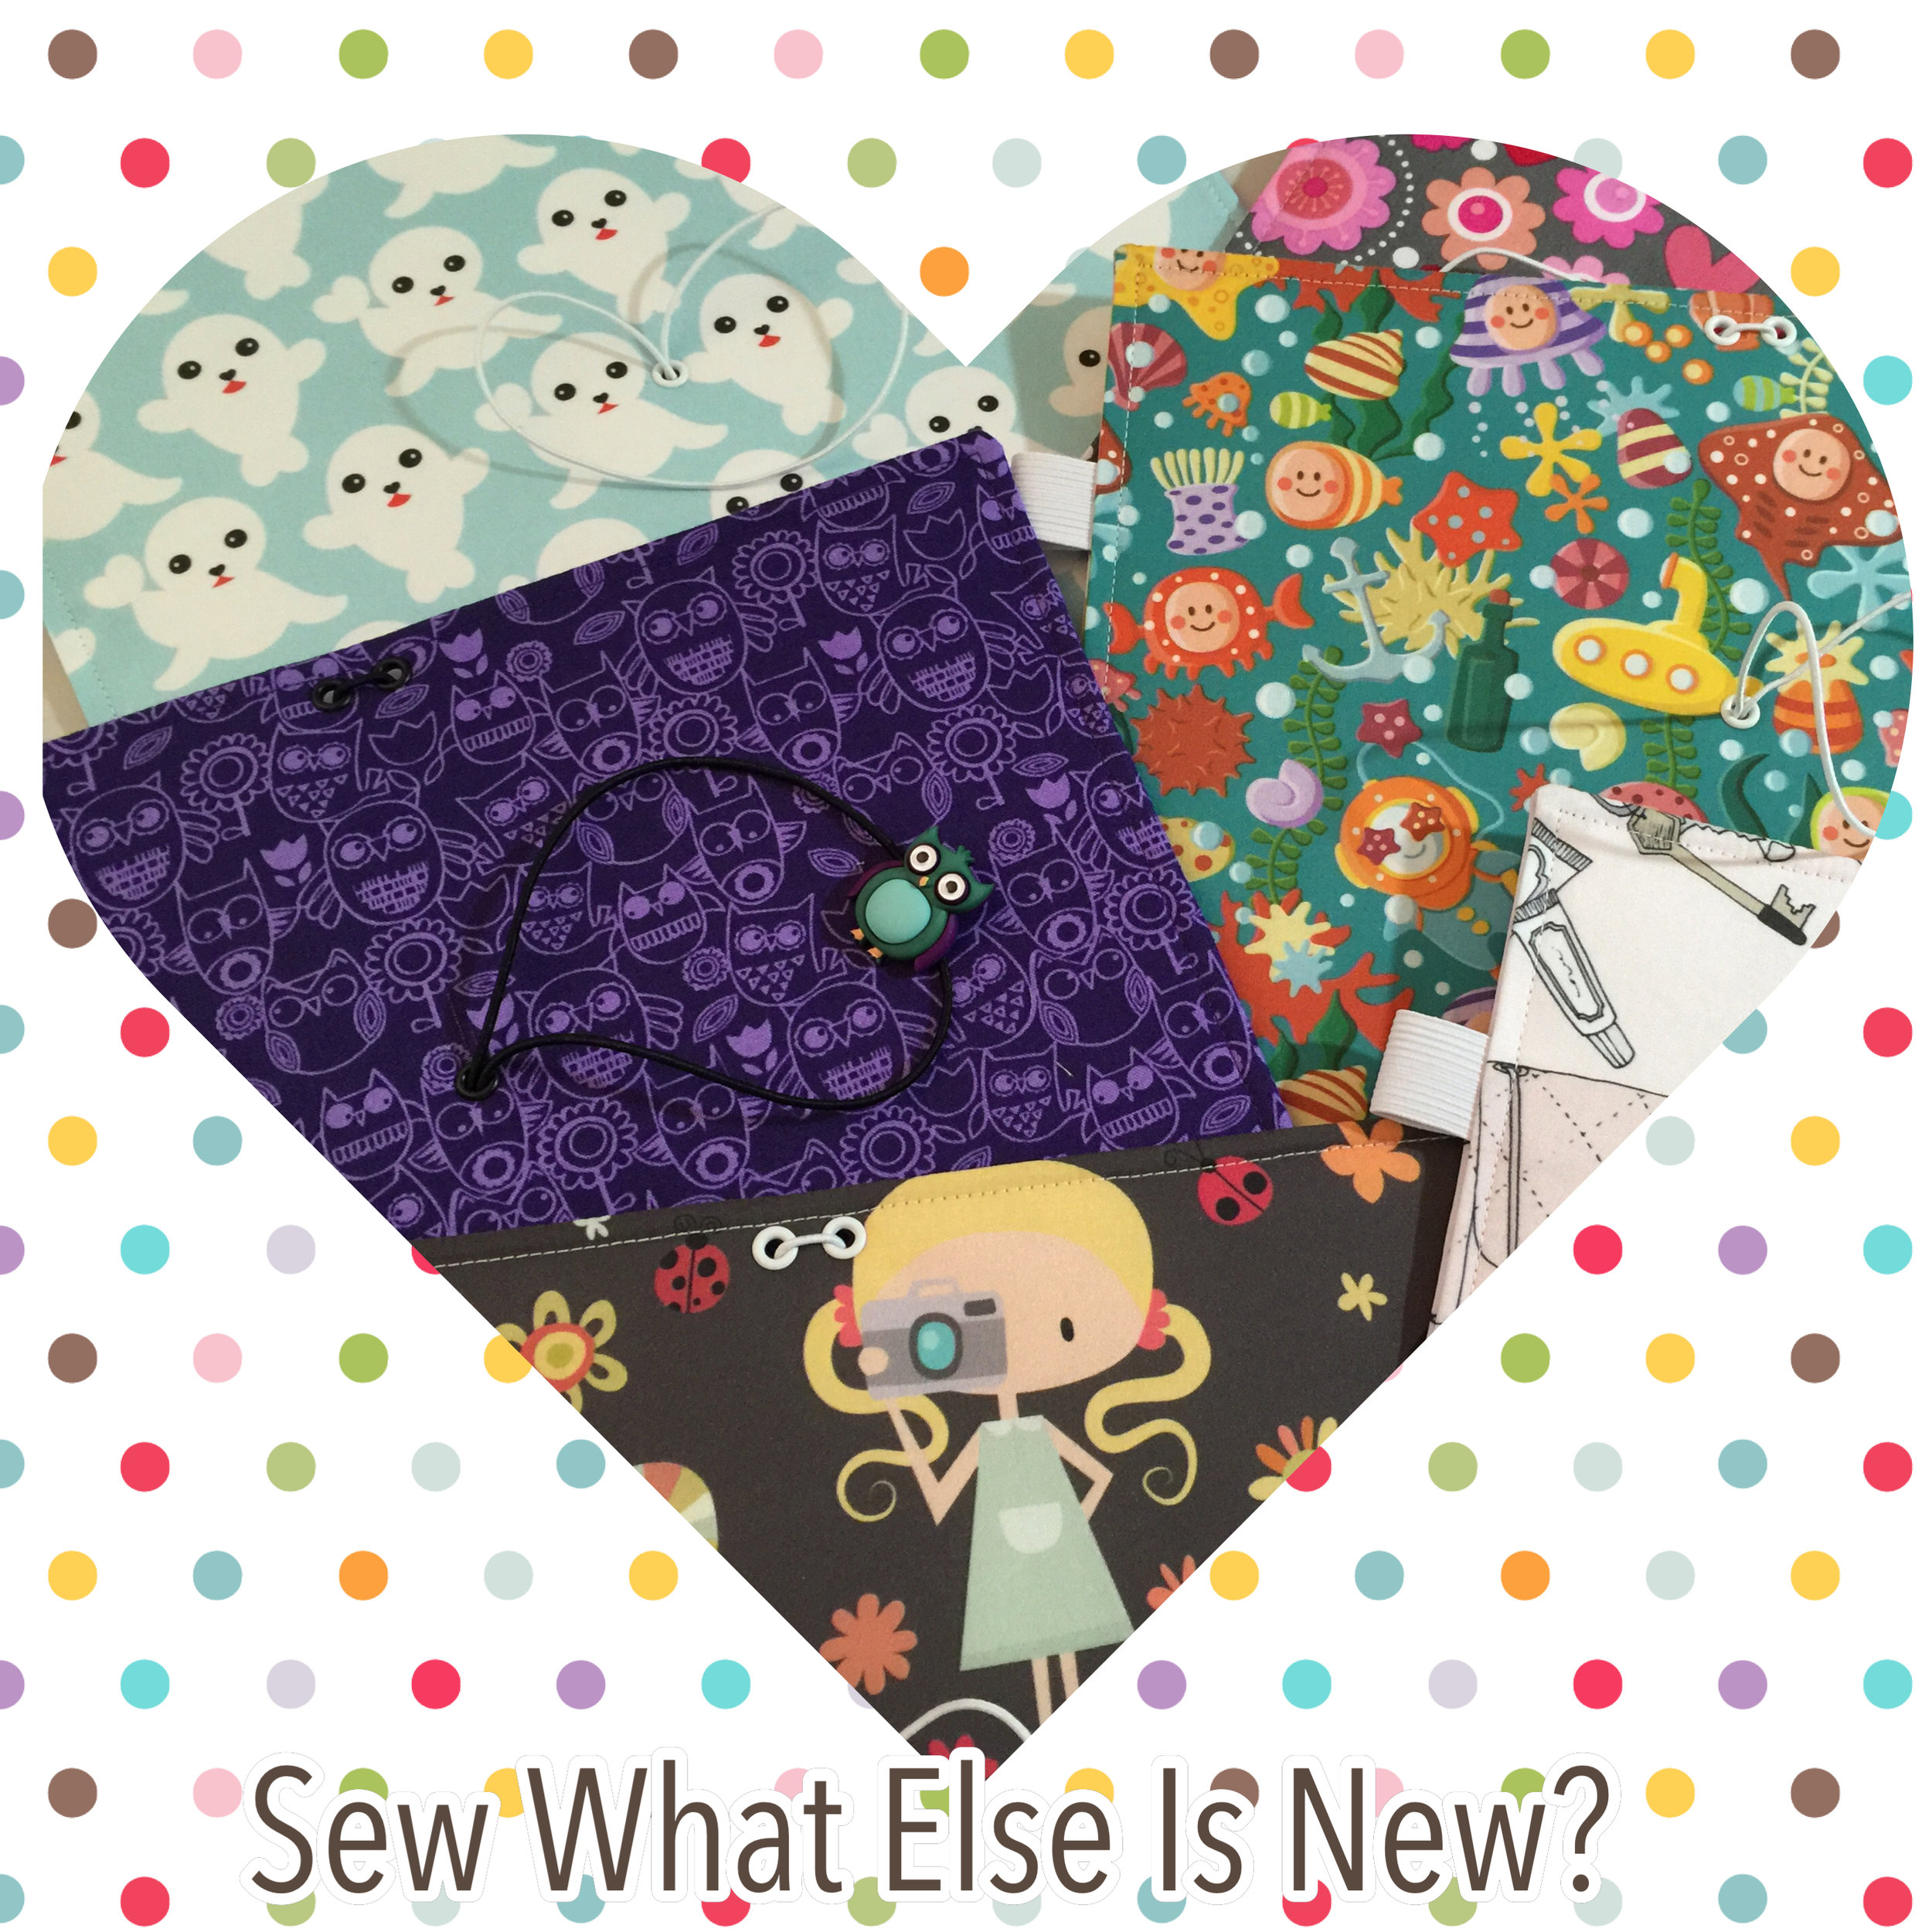 Sew Much is New.JPG